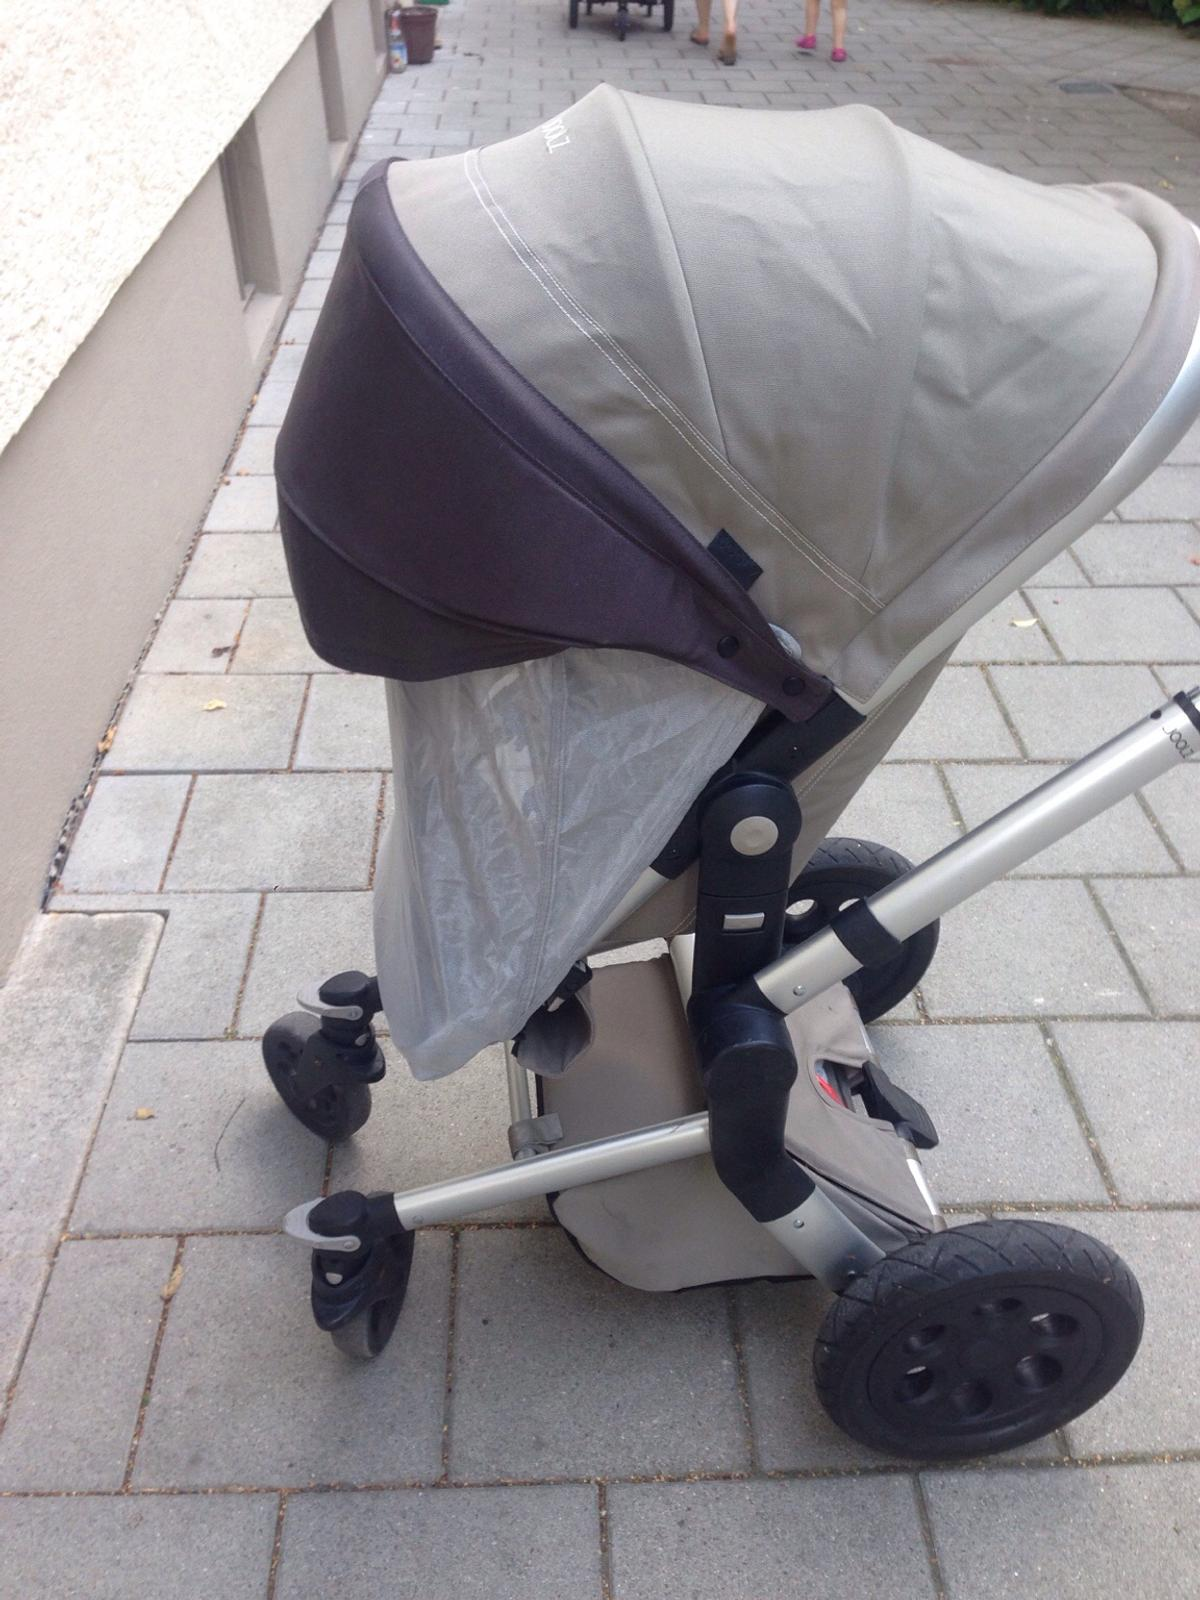 Gebrauchte Kinderwagen Von Joolz Joolz Earth Kinderwagen In 89073 Ulm For 799 00 For Sale